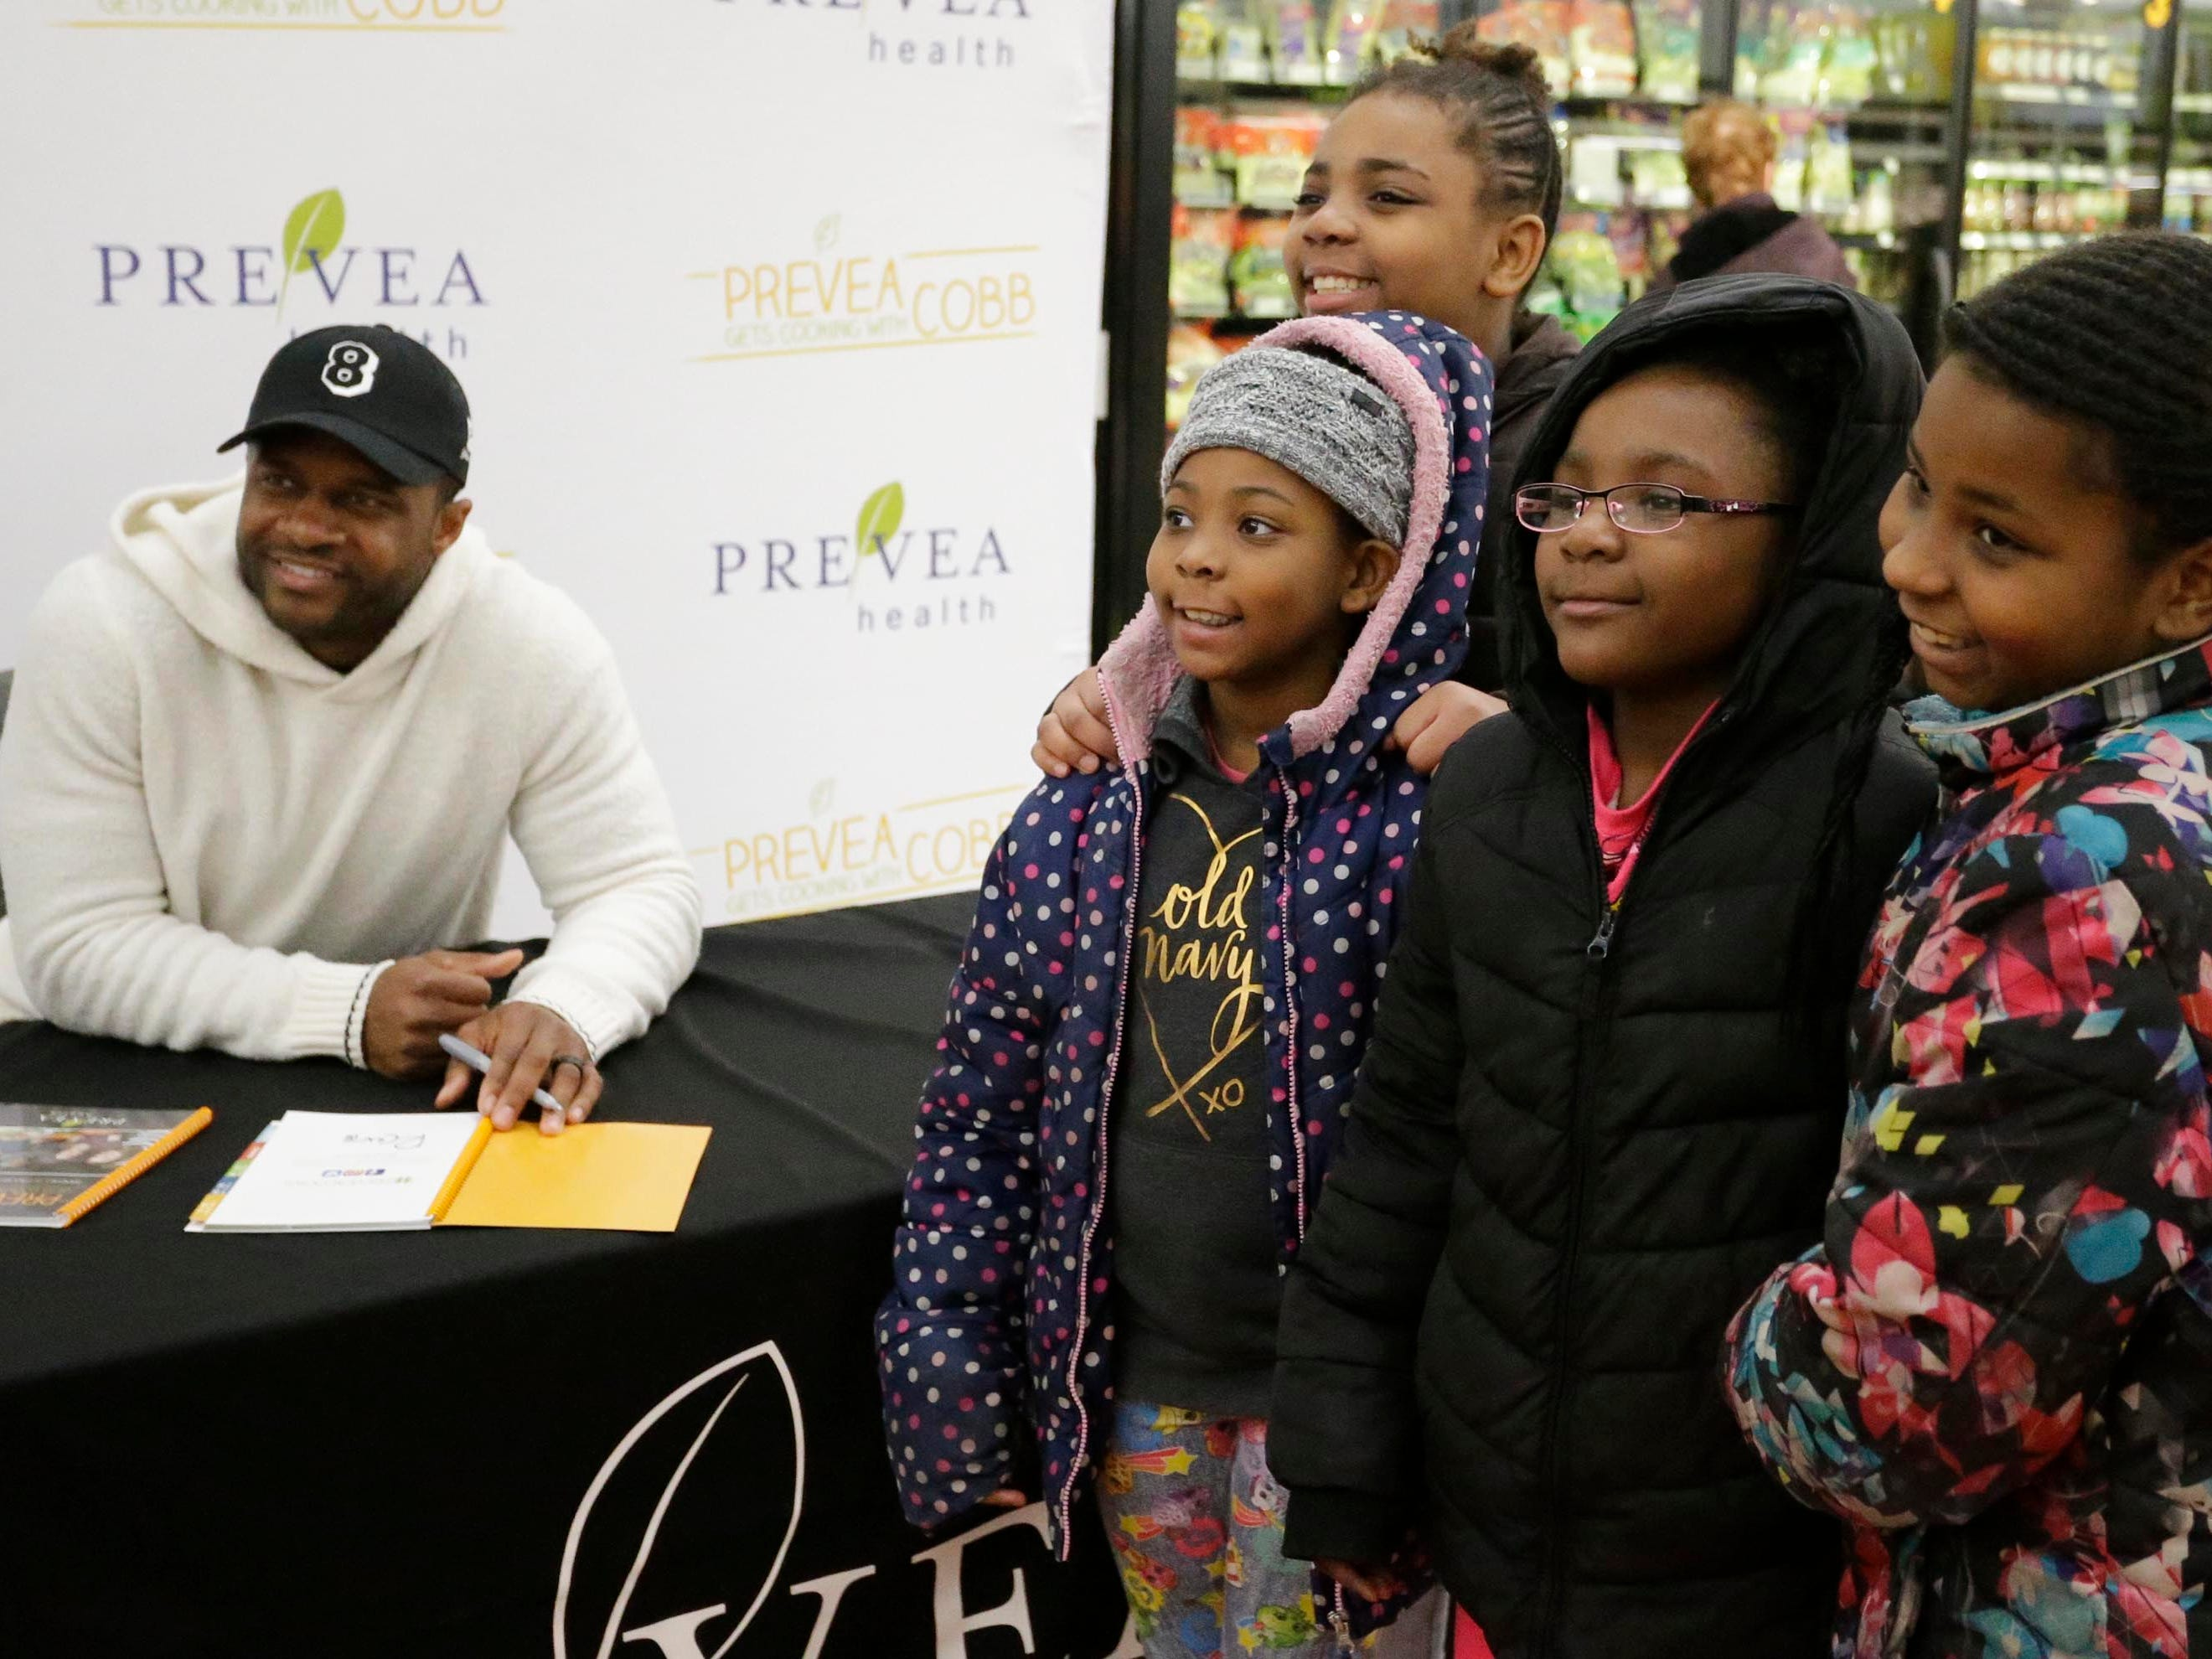 """A family smiles with Green Bay Packer Randall Cobb at Festival Foods, Thursday, February 28, 2019, in Sheboygan, Wis. Cobb signed his book called, """"Prevea Gets Cooking with Cobb: Randall's Favorite Kid-Friendly Recipes""""."""